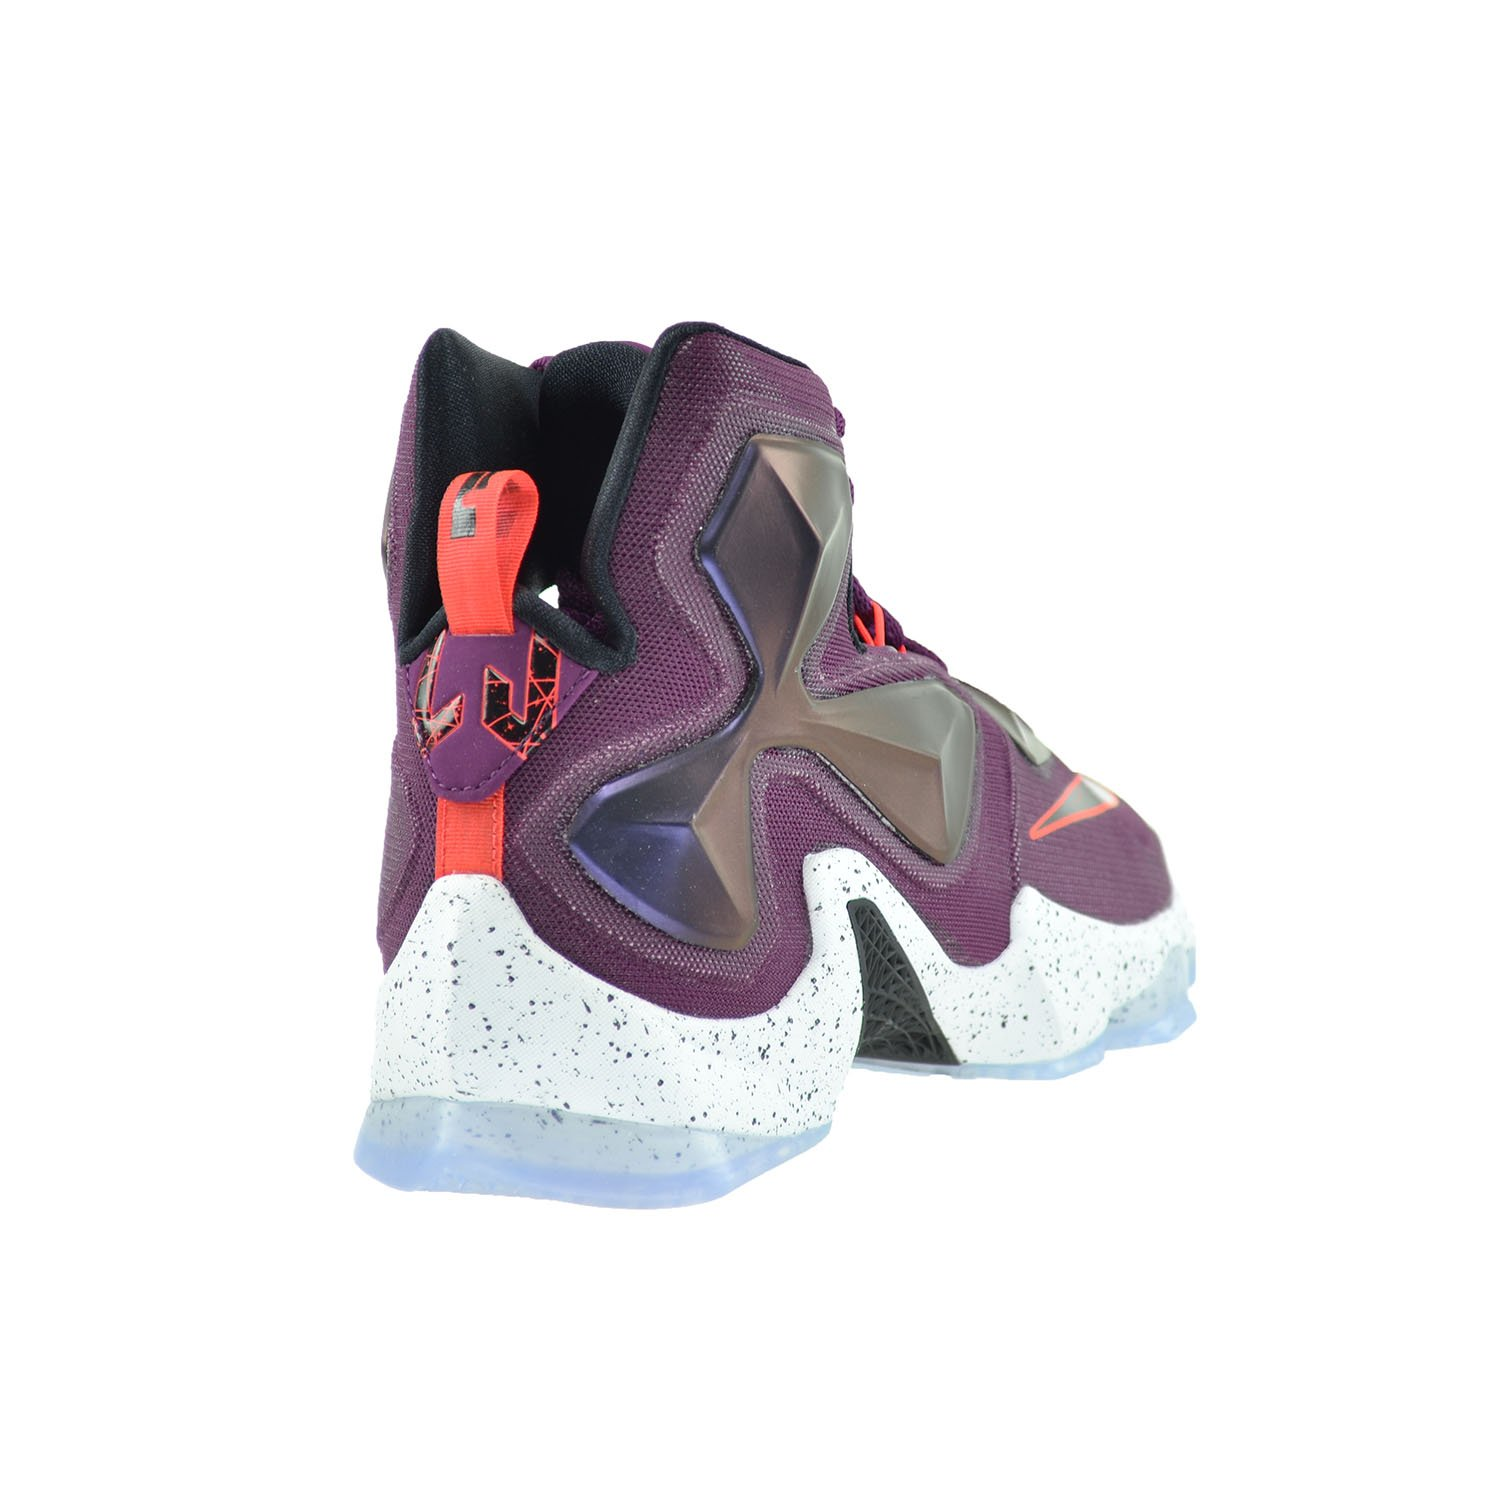 Amazon.com | NIKE Lebron XIII Mens Basketball Shoes Mulberry/Black-Purple Platinum Vivid Purple 807219-500 (10.5 D(M) US) | Basketball